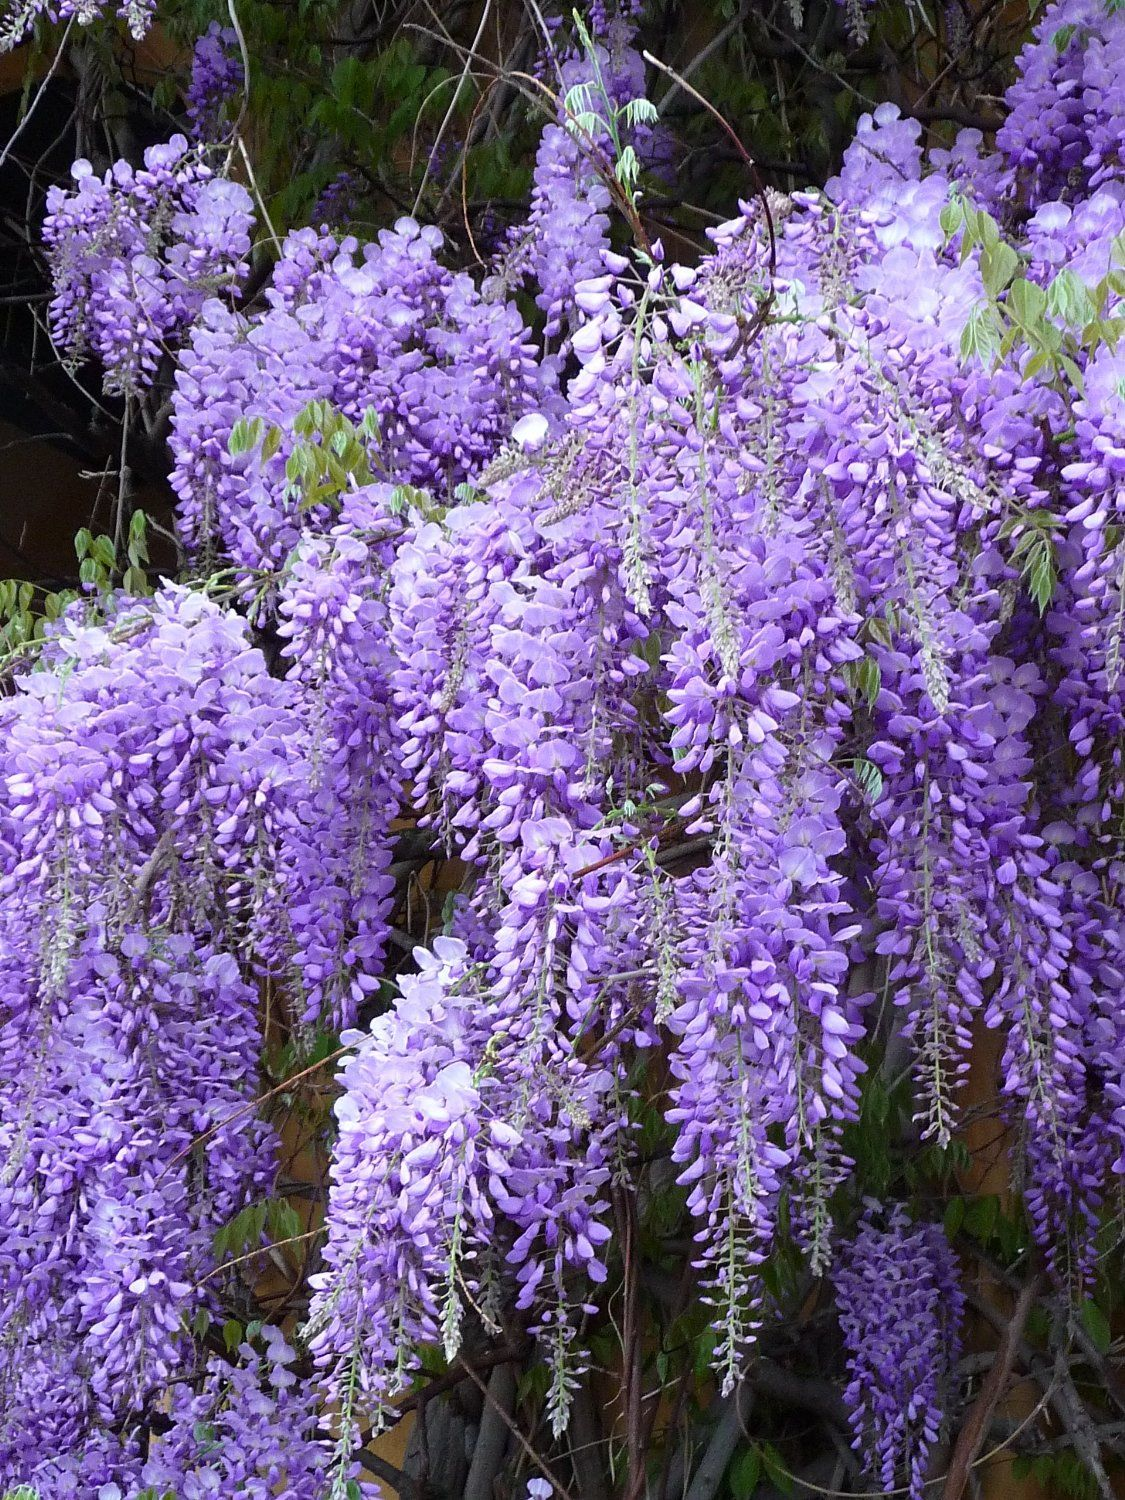 Amazon Com Royal Purple Wisteria Fragrant Wisteria 2 Year Plant Flowering Plants Patio Lawn Garden Wisteria Plant Purple Wisteria Fragrant Plant